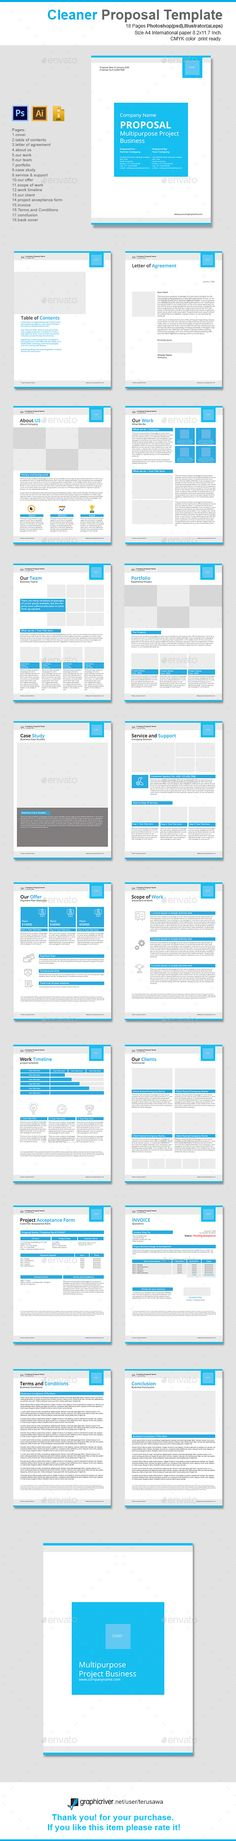 Professional Business Proposal Template   Pinteres